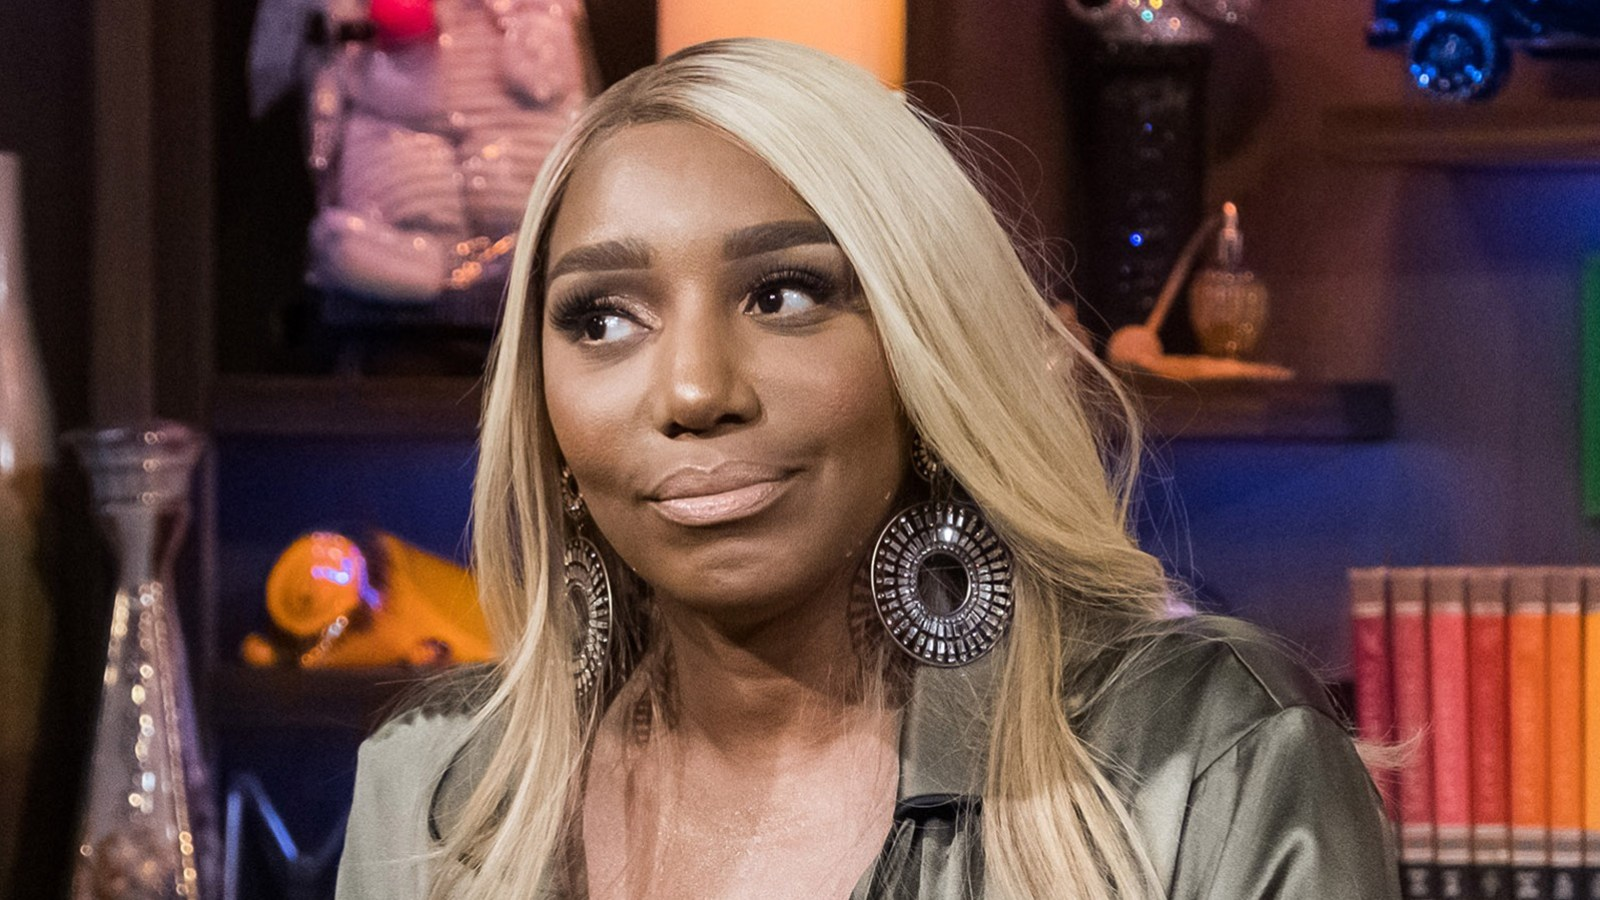 NeNe Leakes Has An Announcement For Fans - People Freak Out Due To The Lack Of Her Wedding Ring